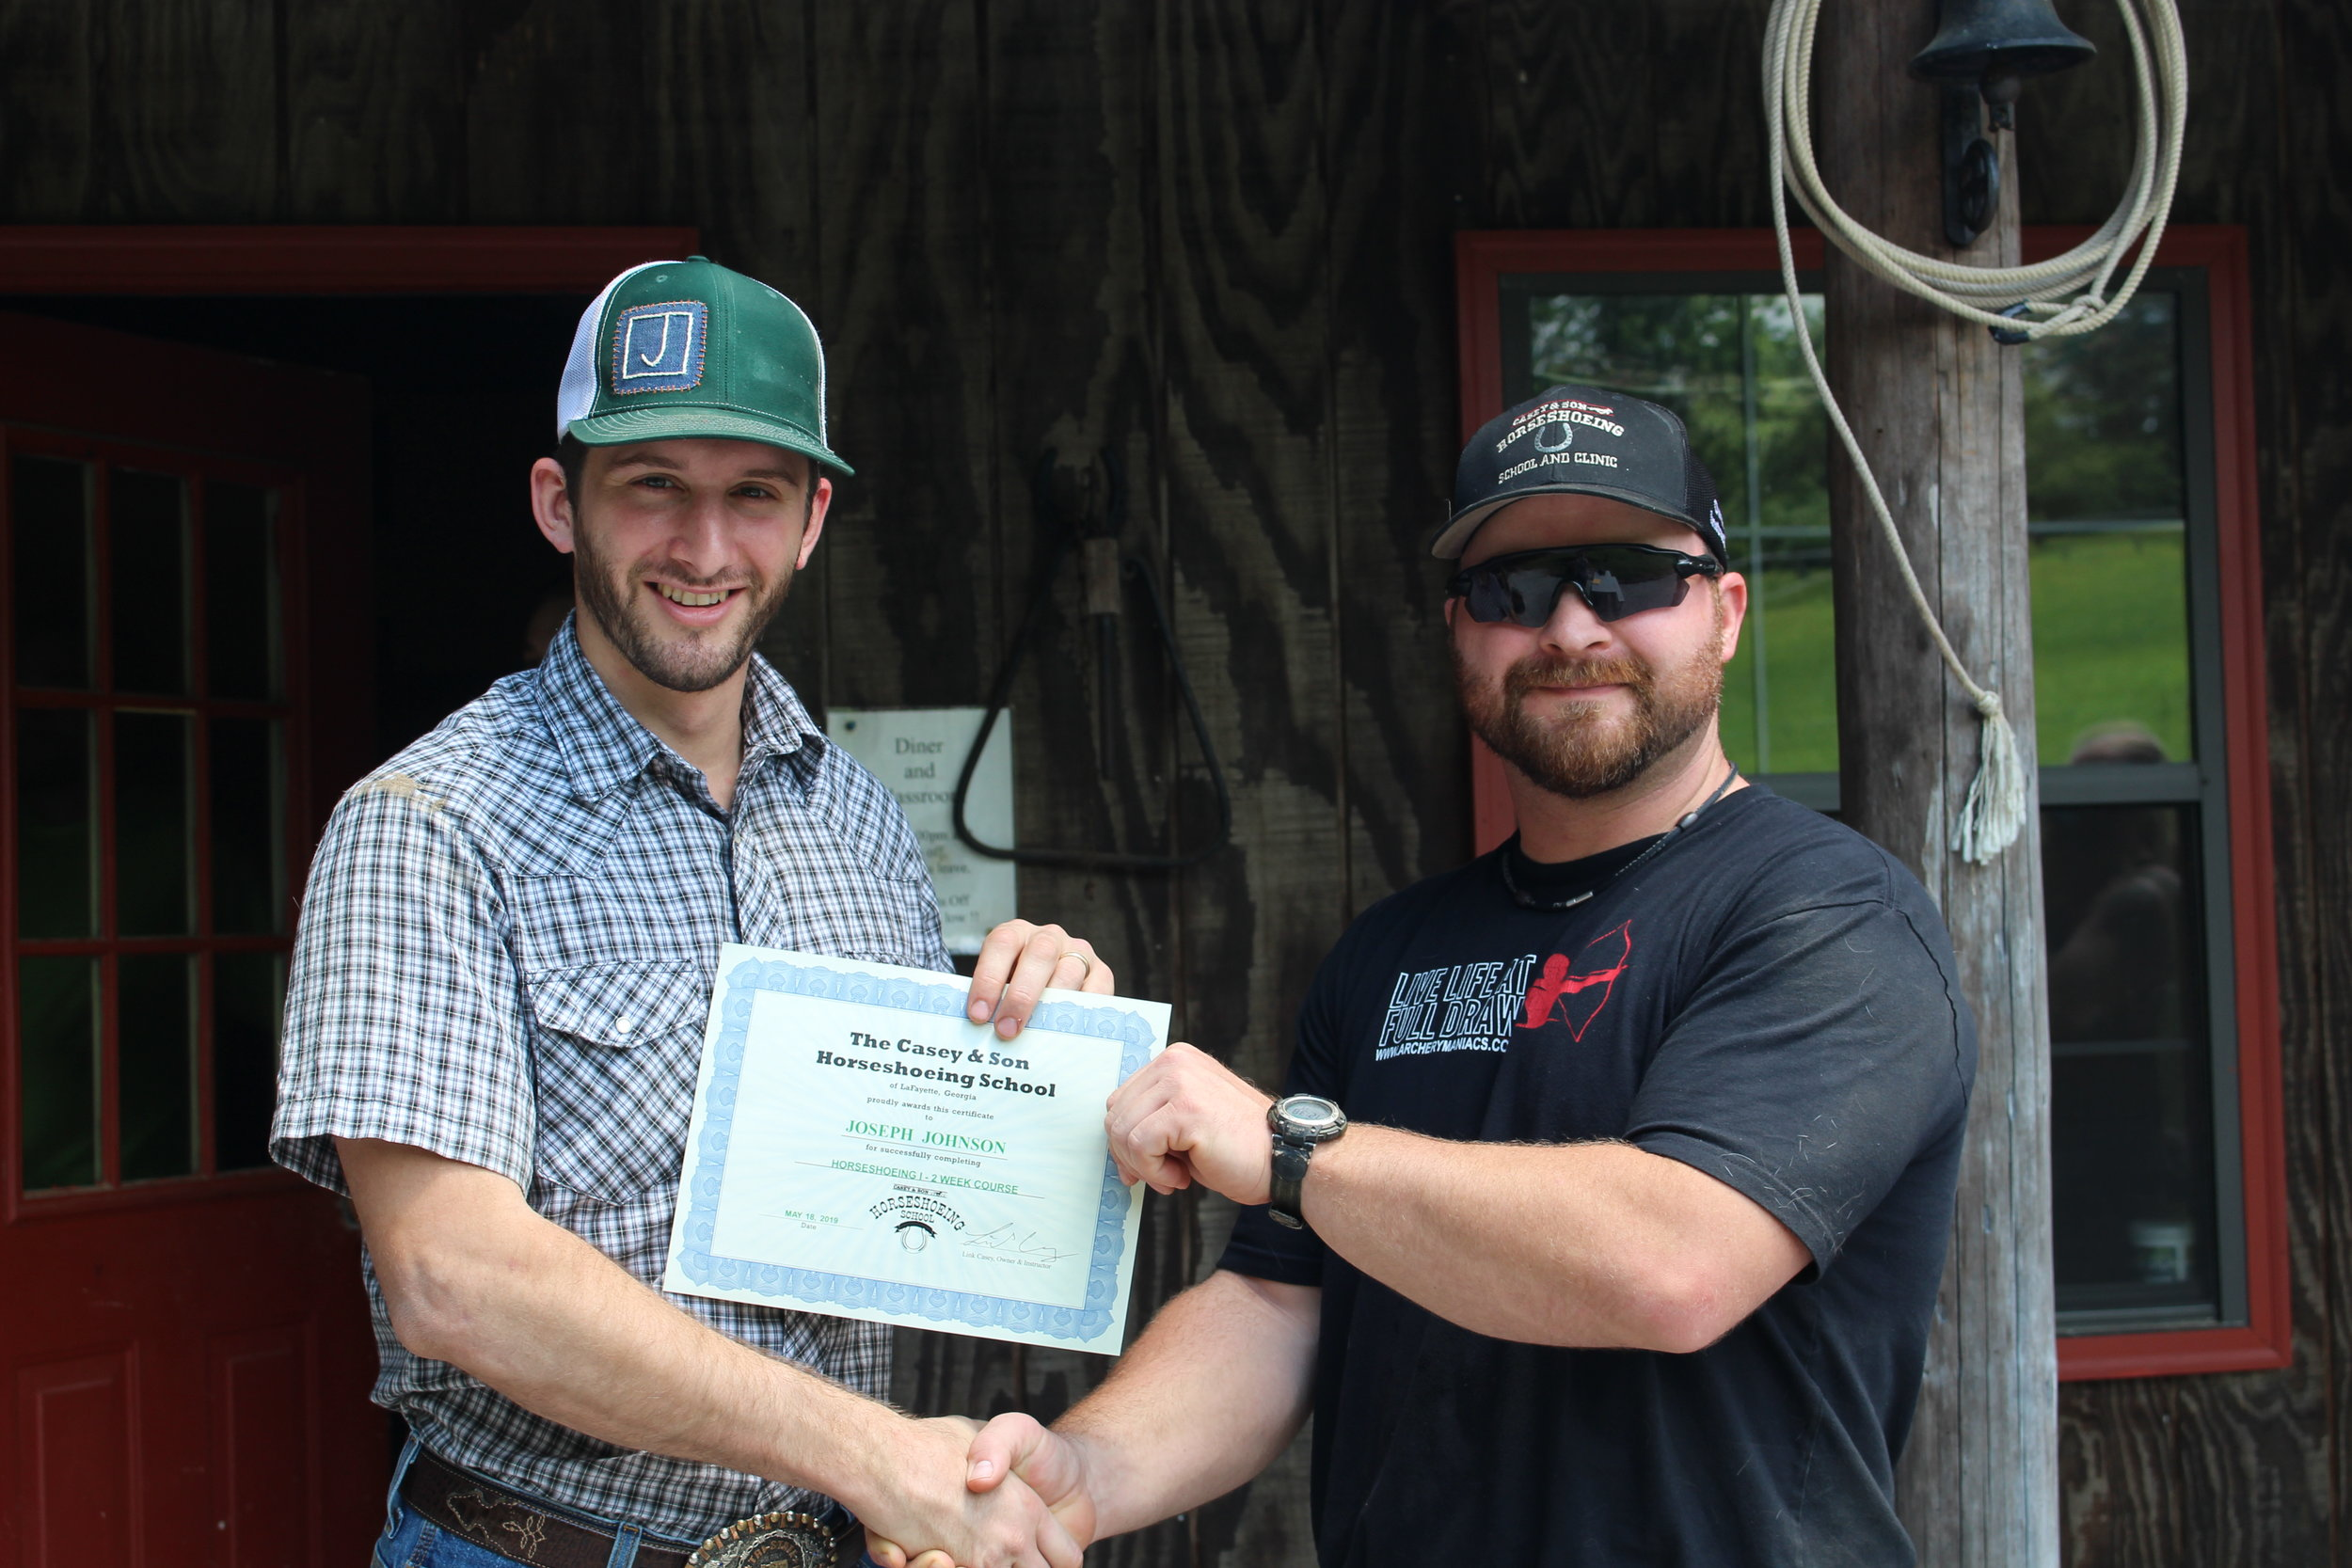 Joseph Johnson, LA, Firefighter completed a short Horse Owner Course in order to shoe his own. At Casey & Son Horseshoeing School, pictured here with Link Casey, Owner and Instructor .